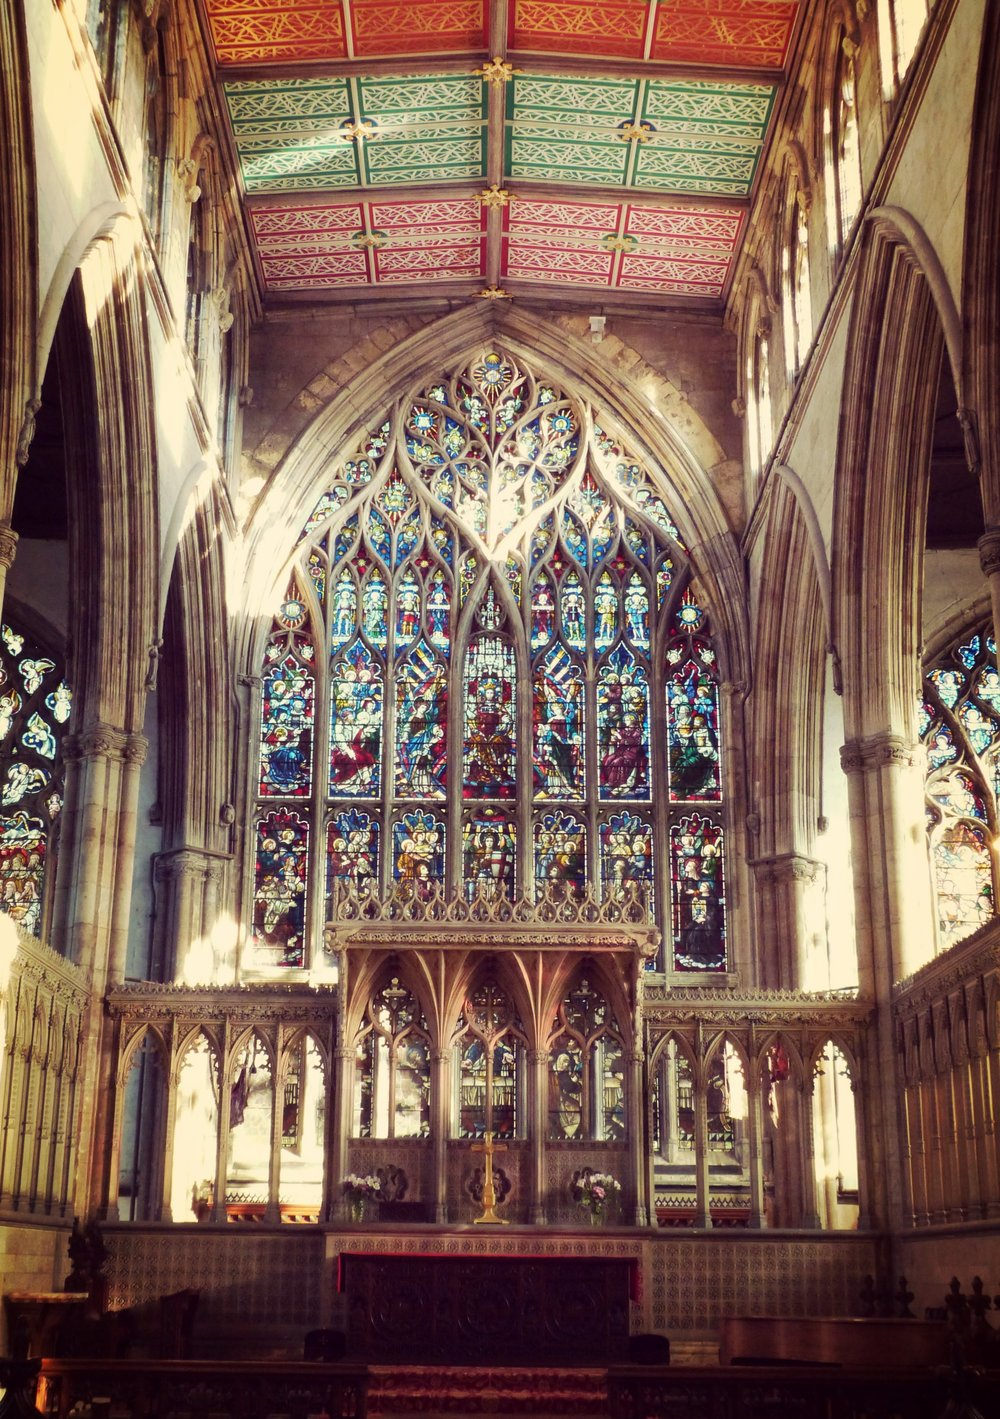 The Chancel and East Window